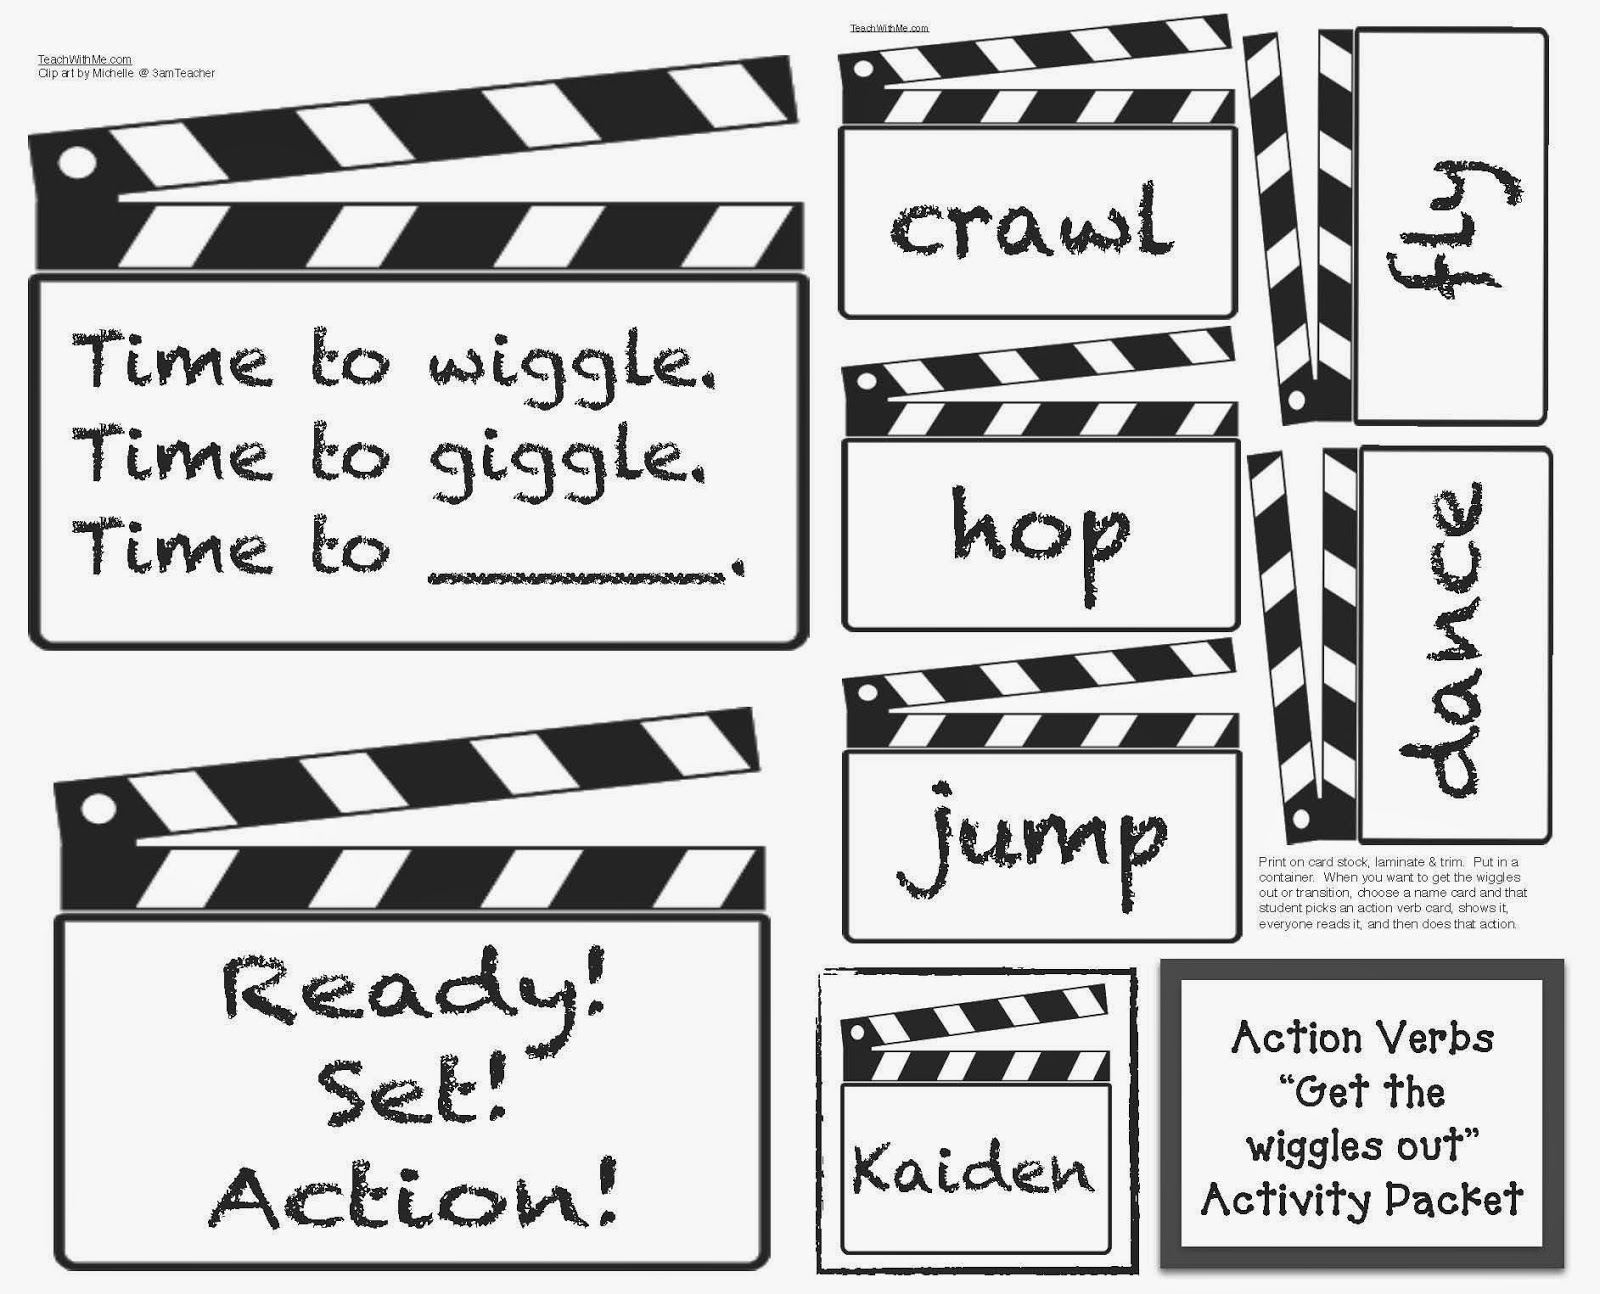 Action Verbs Activities For Classroom Management